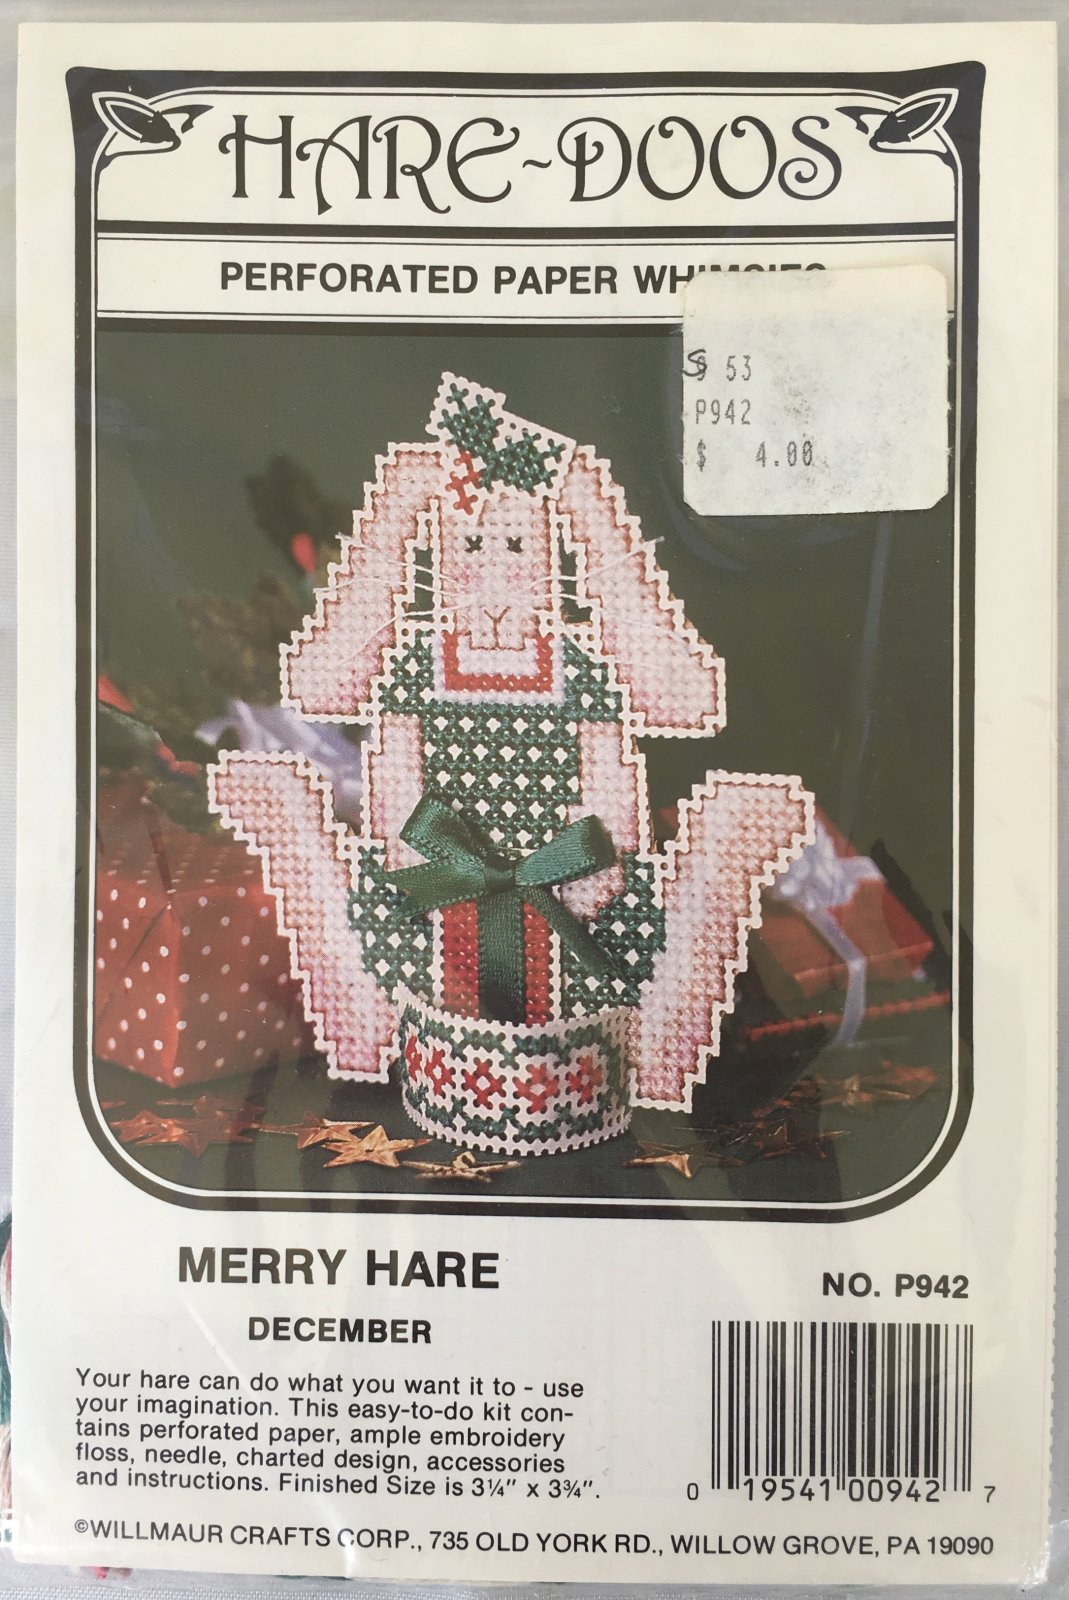 Astor Place: Hare-Doos Merry Hare Kit December P942